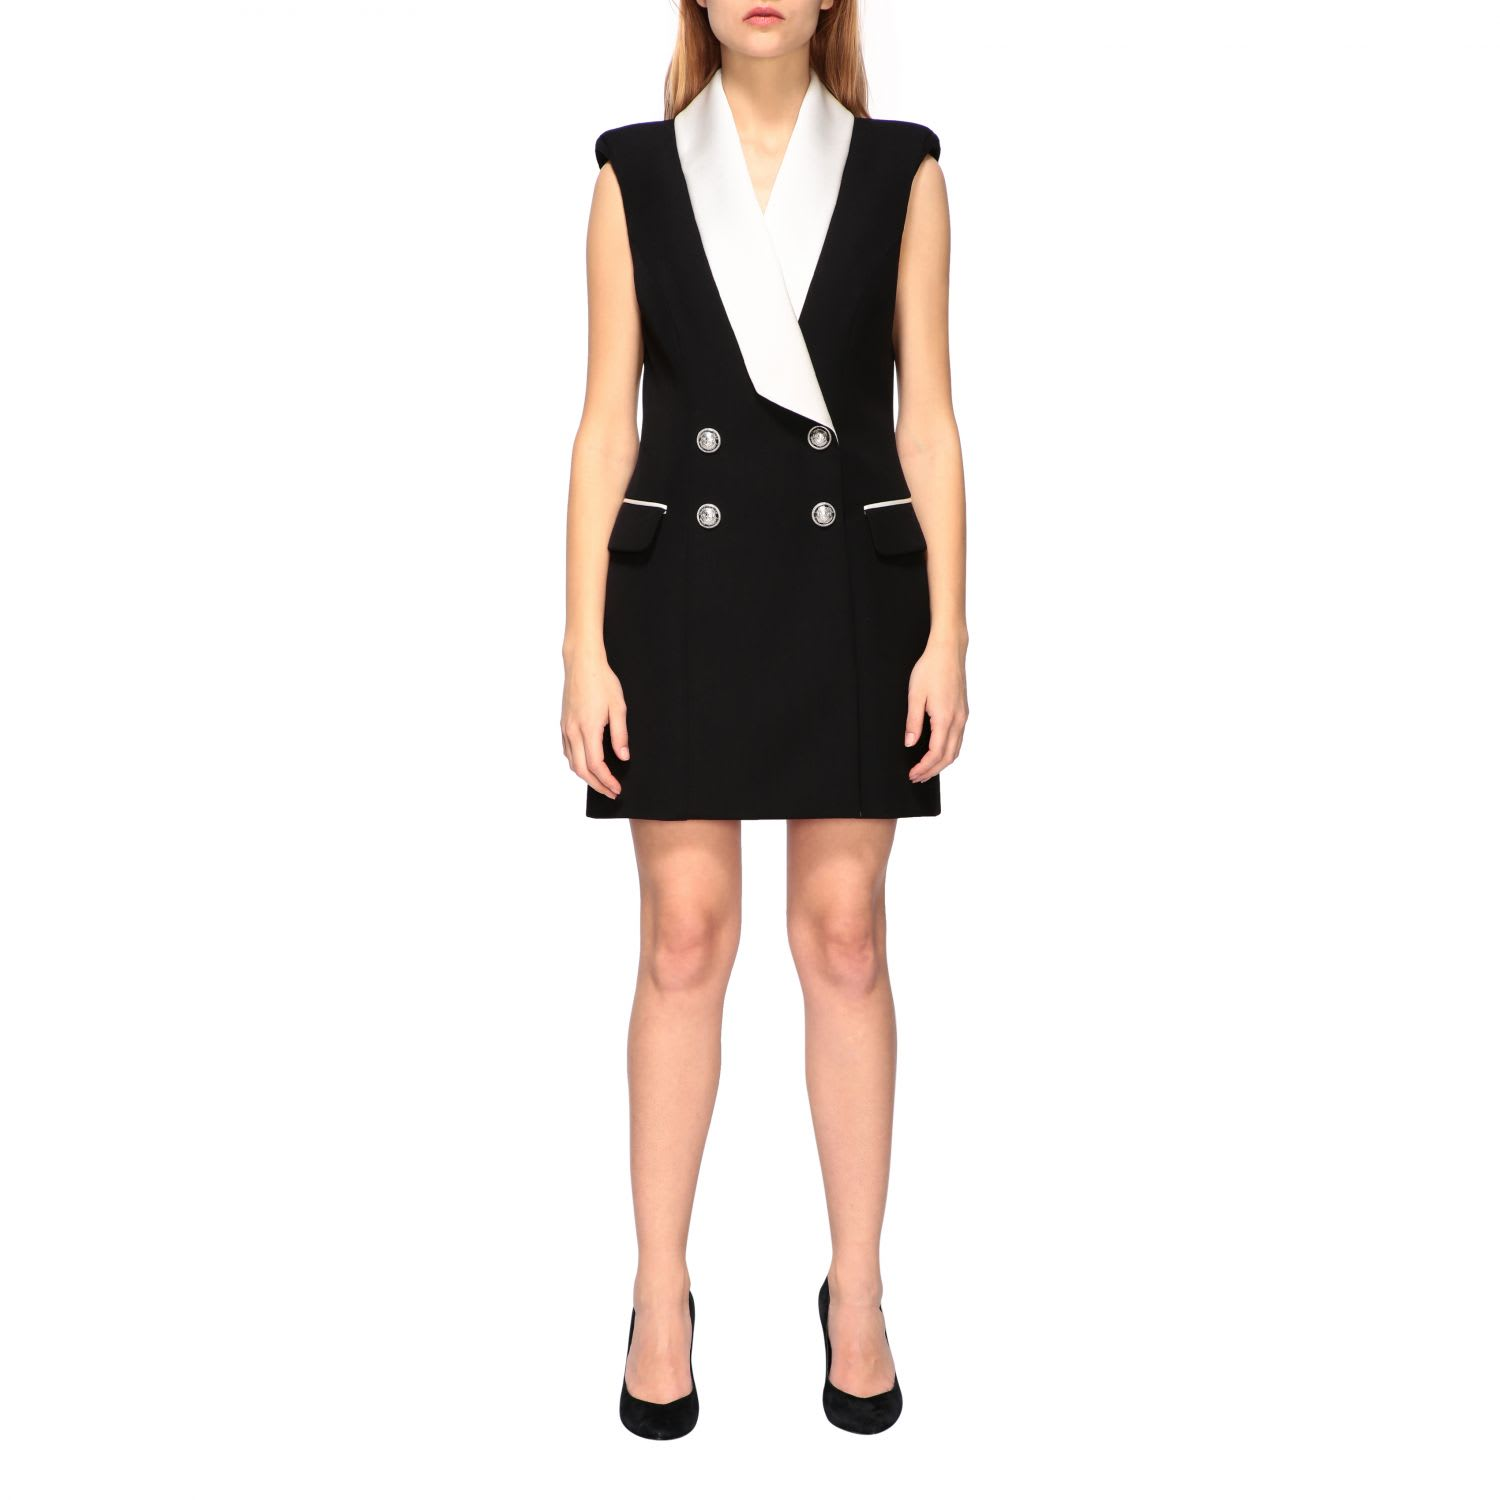 Buy Balmain Dress Balmain Tuxedo Style Dress With Satin Collar online, shop Balmain with free shipping